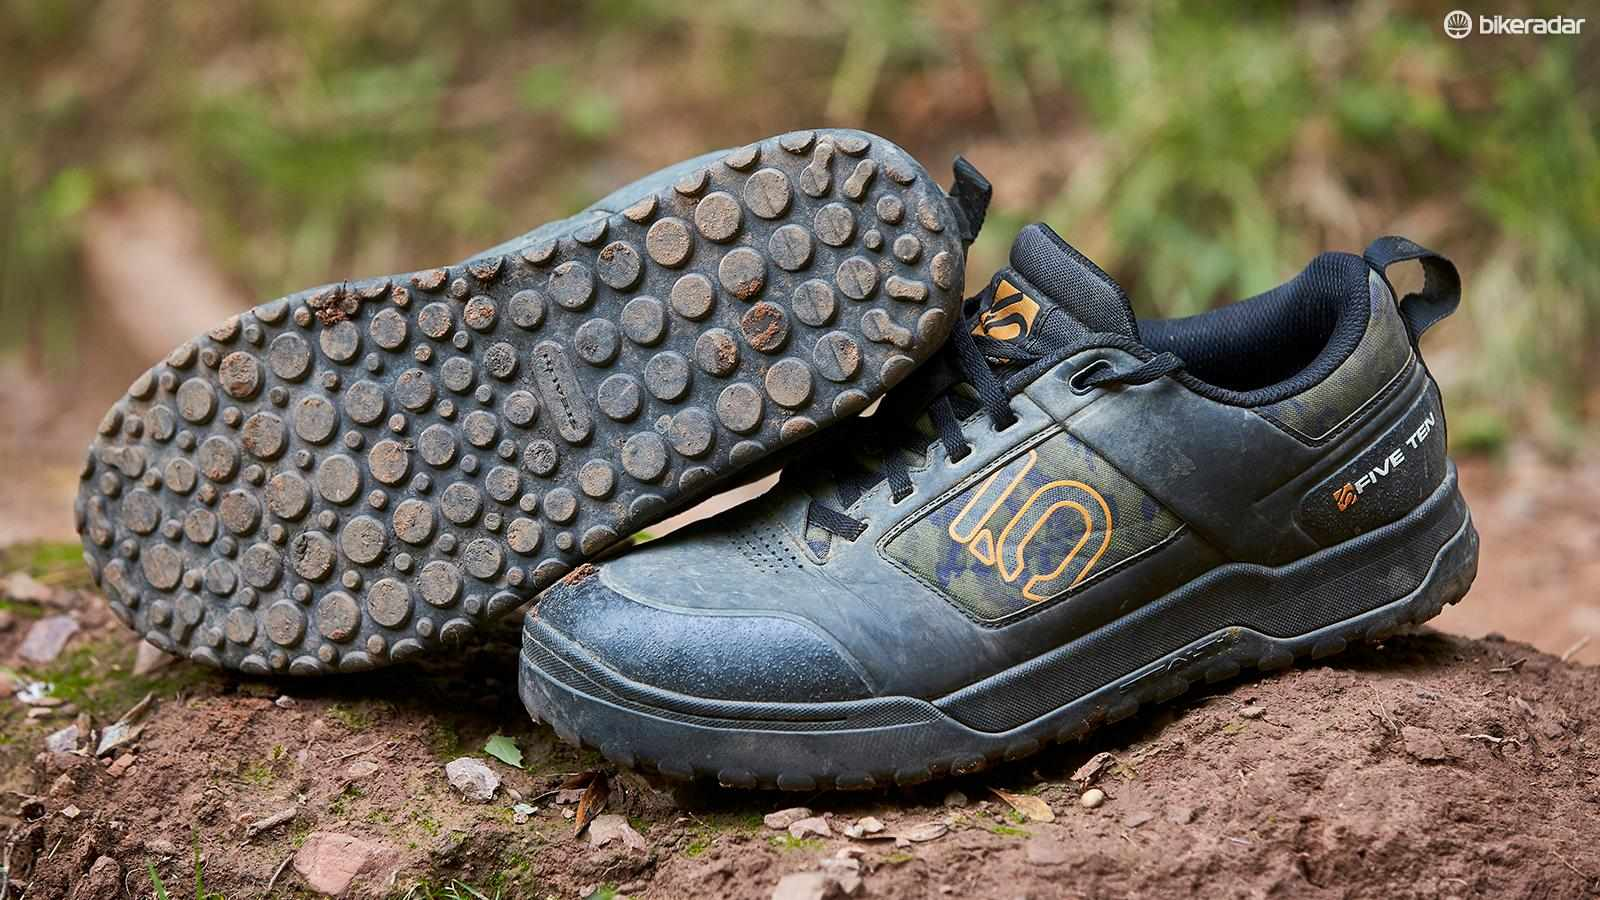 Five Ten's 'Stealth S1' rubber gives a glue-like stickiness to the sole